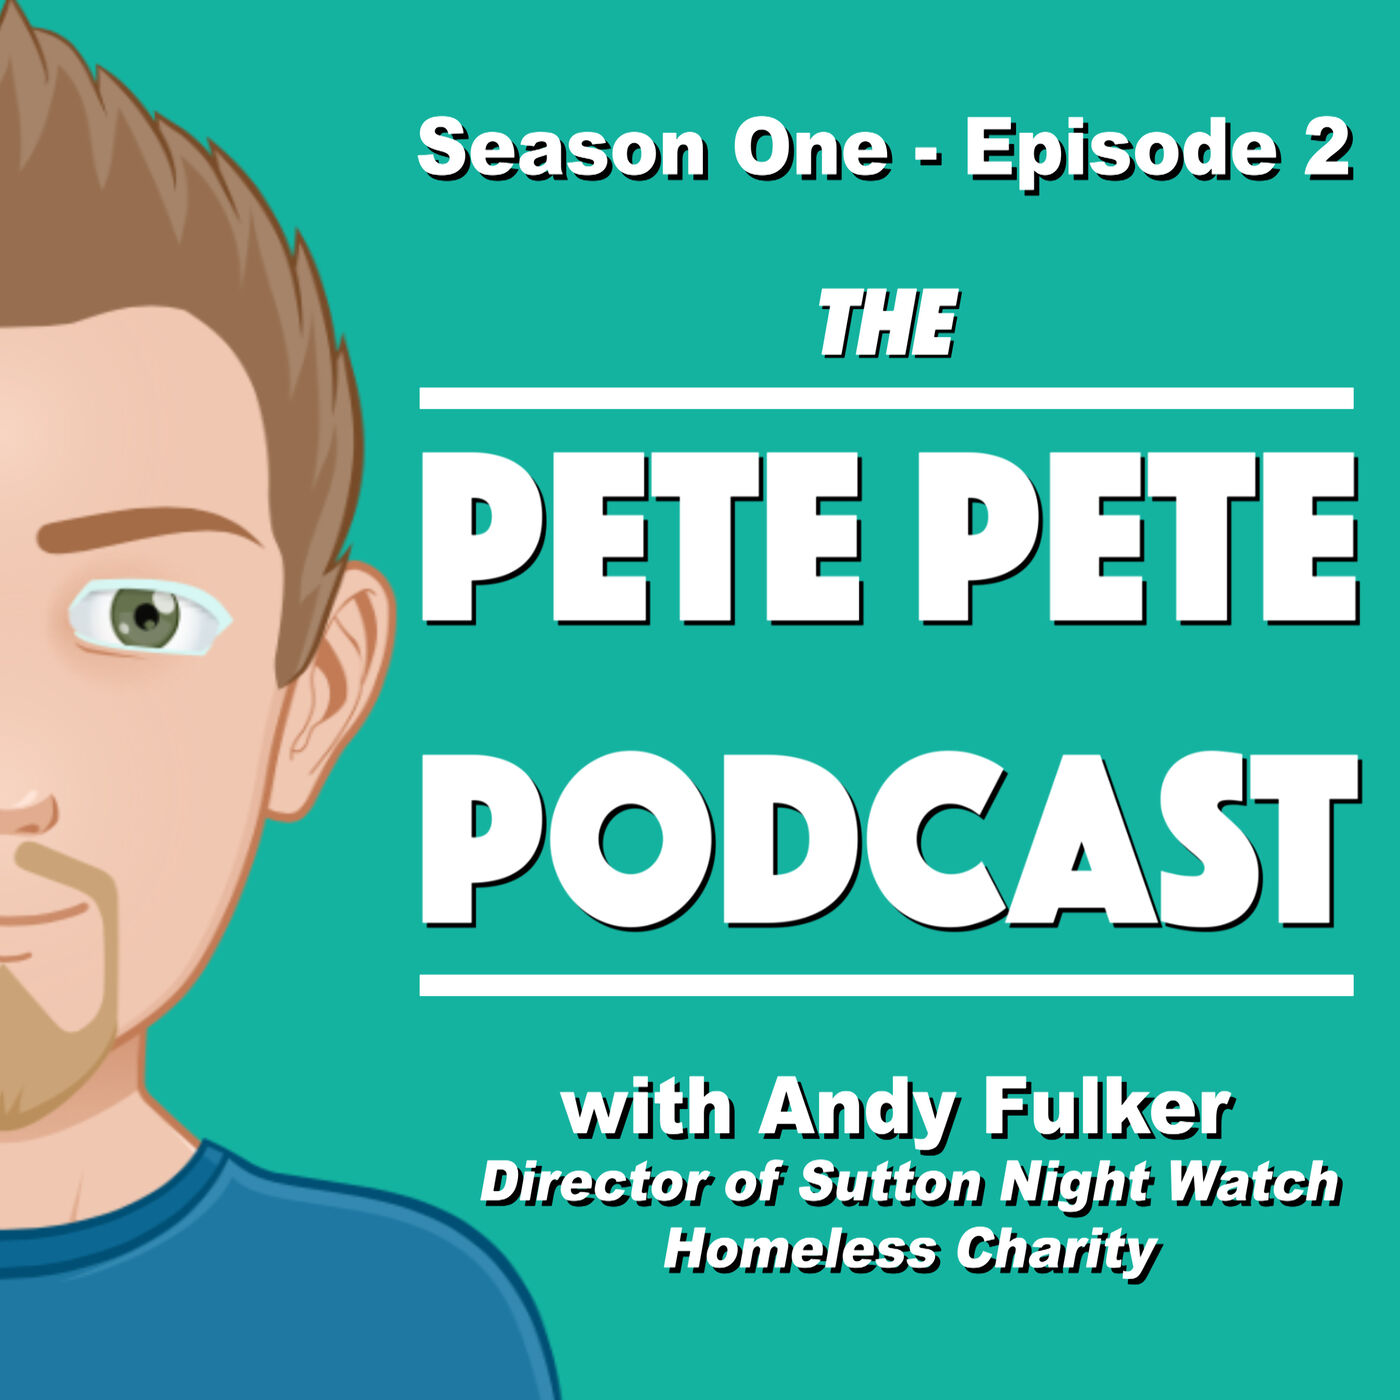 02. Pete Pete Podcast with Andy Fulker (Sutton Night Watch Homeless Charity)